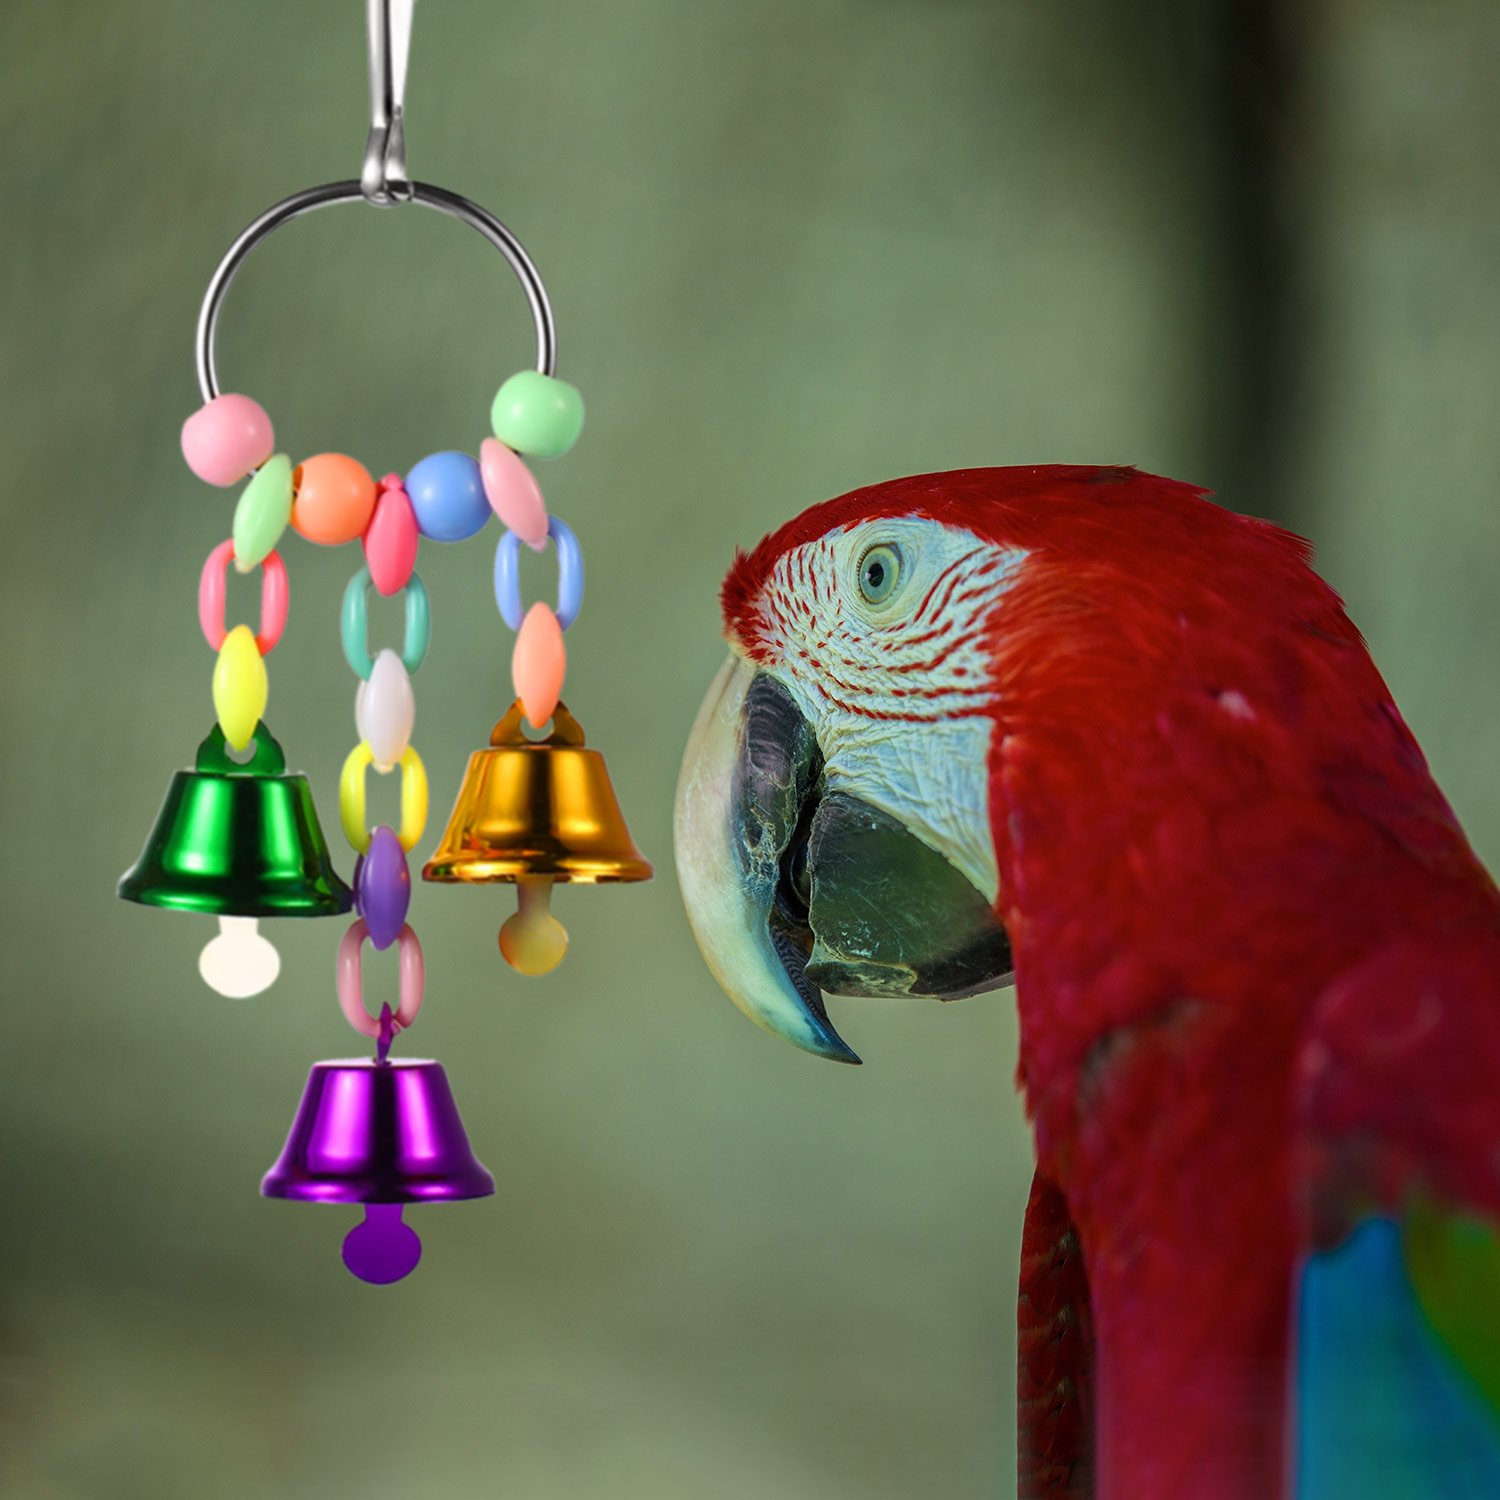 Zhehao 5 Pieces Bird Swing Toys Bell with Colorful Natural Wood Hammock Hanging Perch for Small and Medium Birds Parakeets Cockatiels Conures Macaws Parrots Love Birds Finches by Zhehao (Image #3)